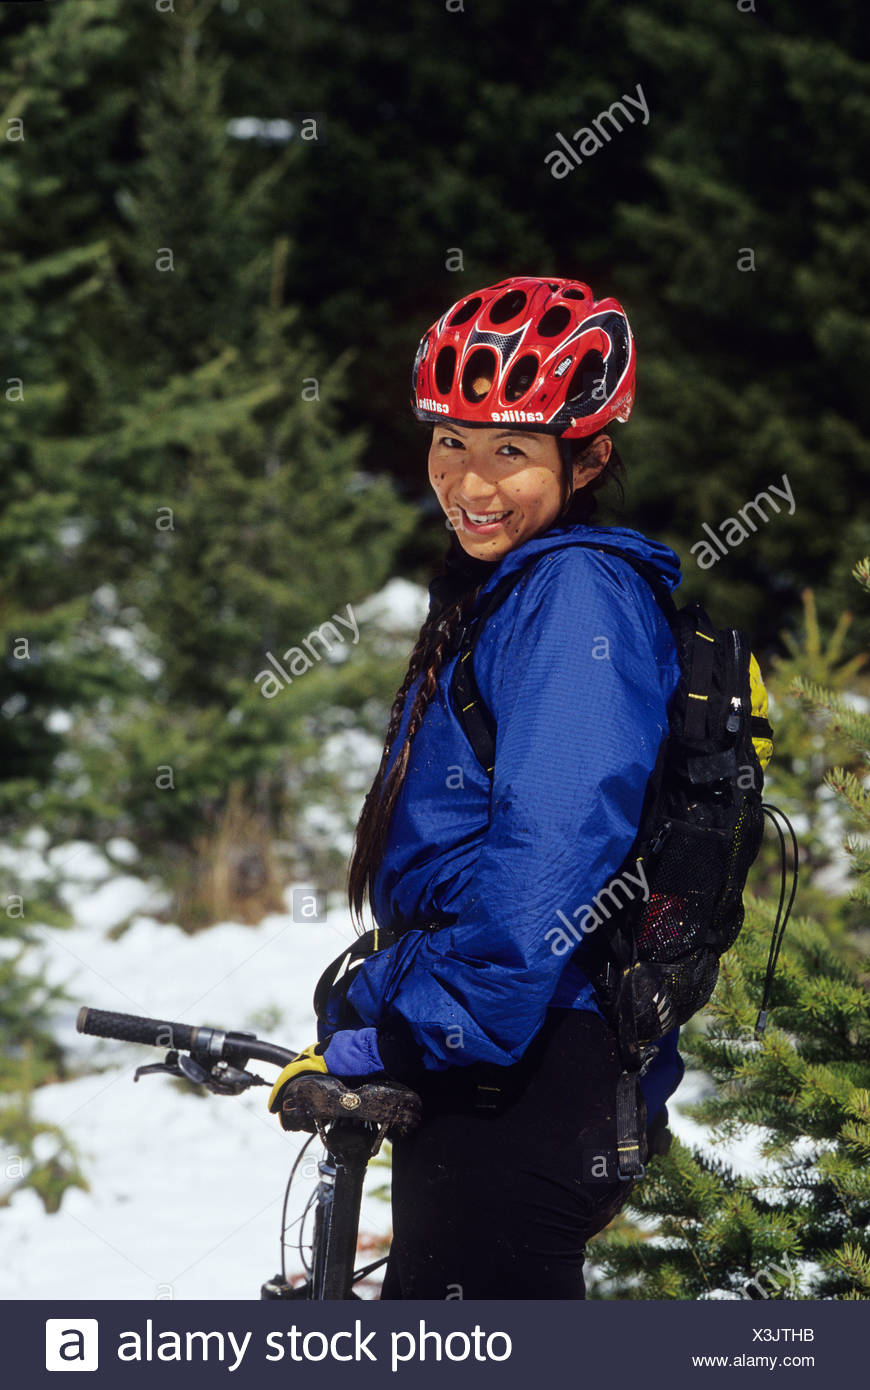 Female mountain biker taking a break from riding snowy, springtime trails, British Columbia, Canada. - Stock Image